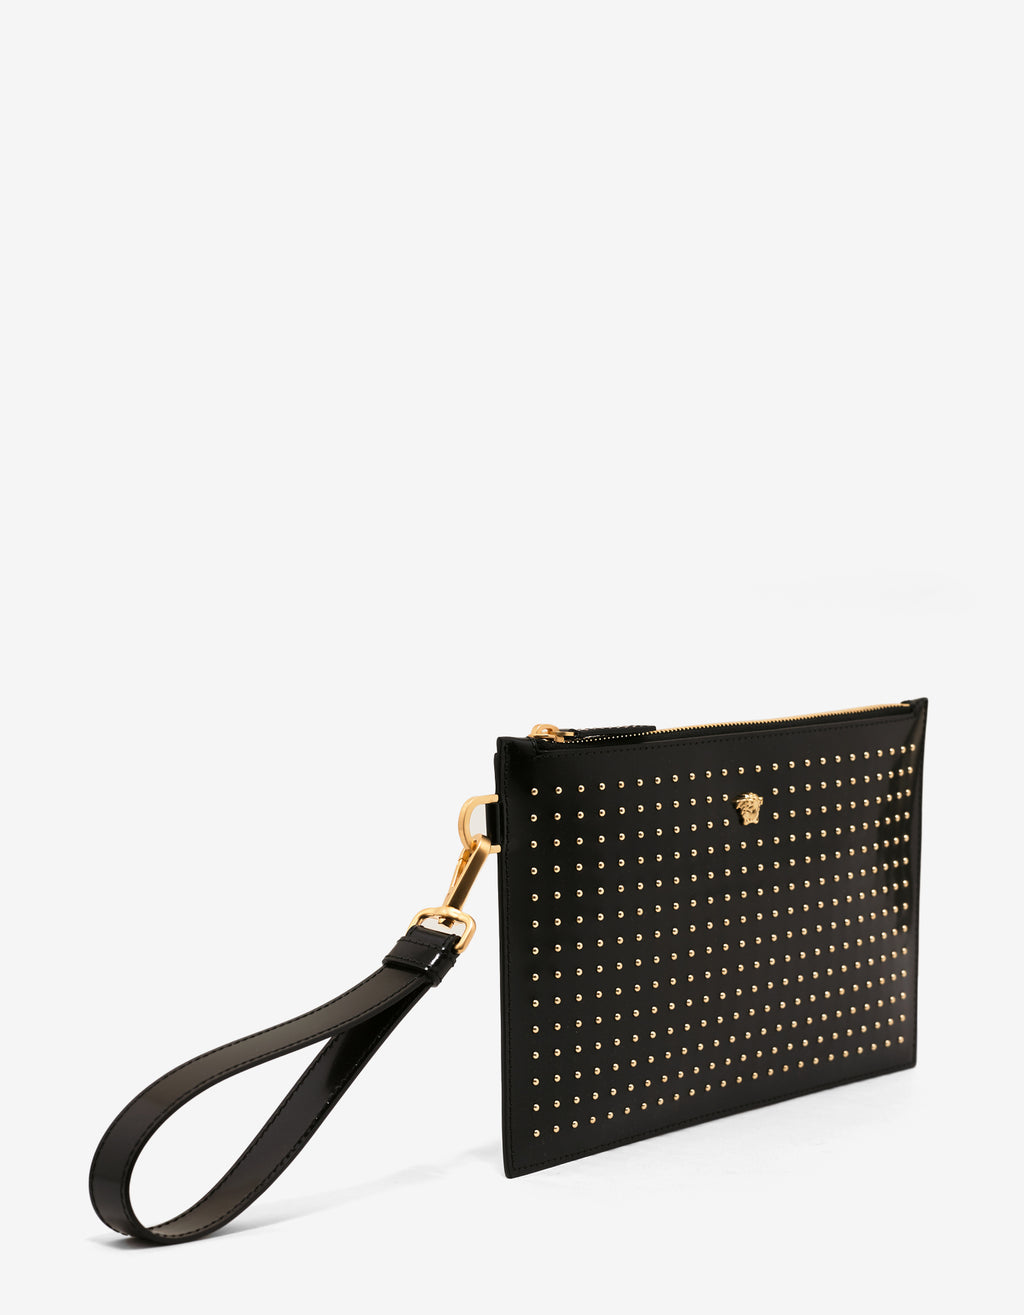 Black Stud Embellished Patent Leather Pouch